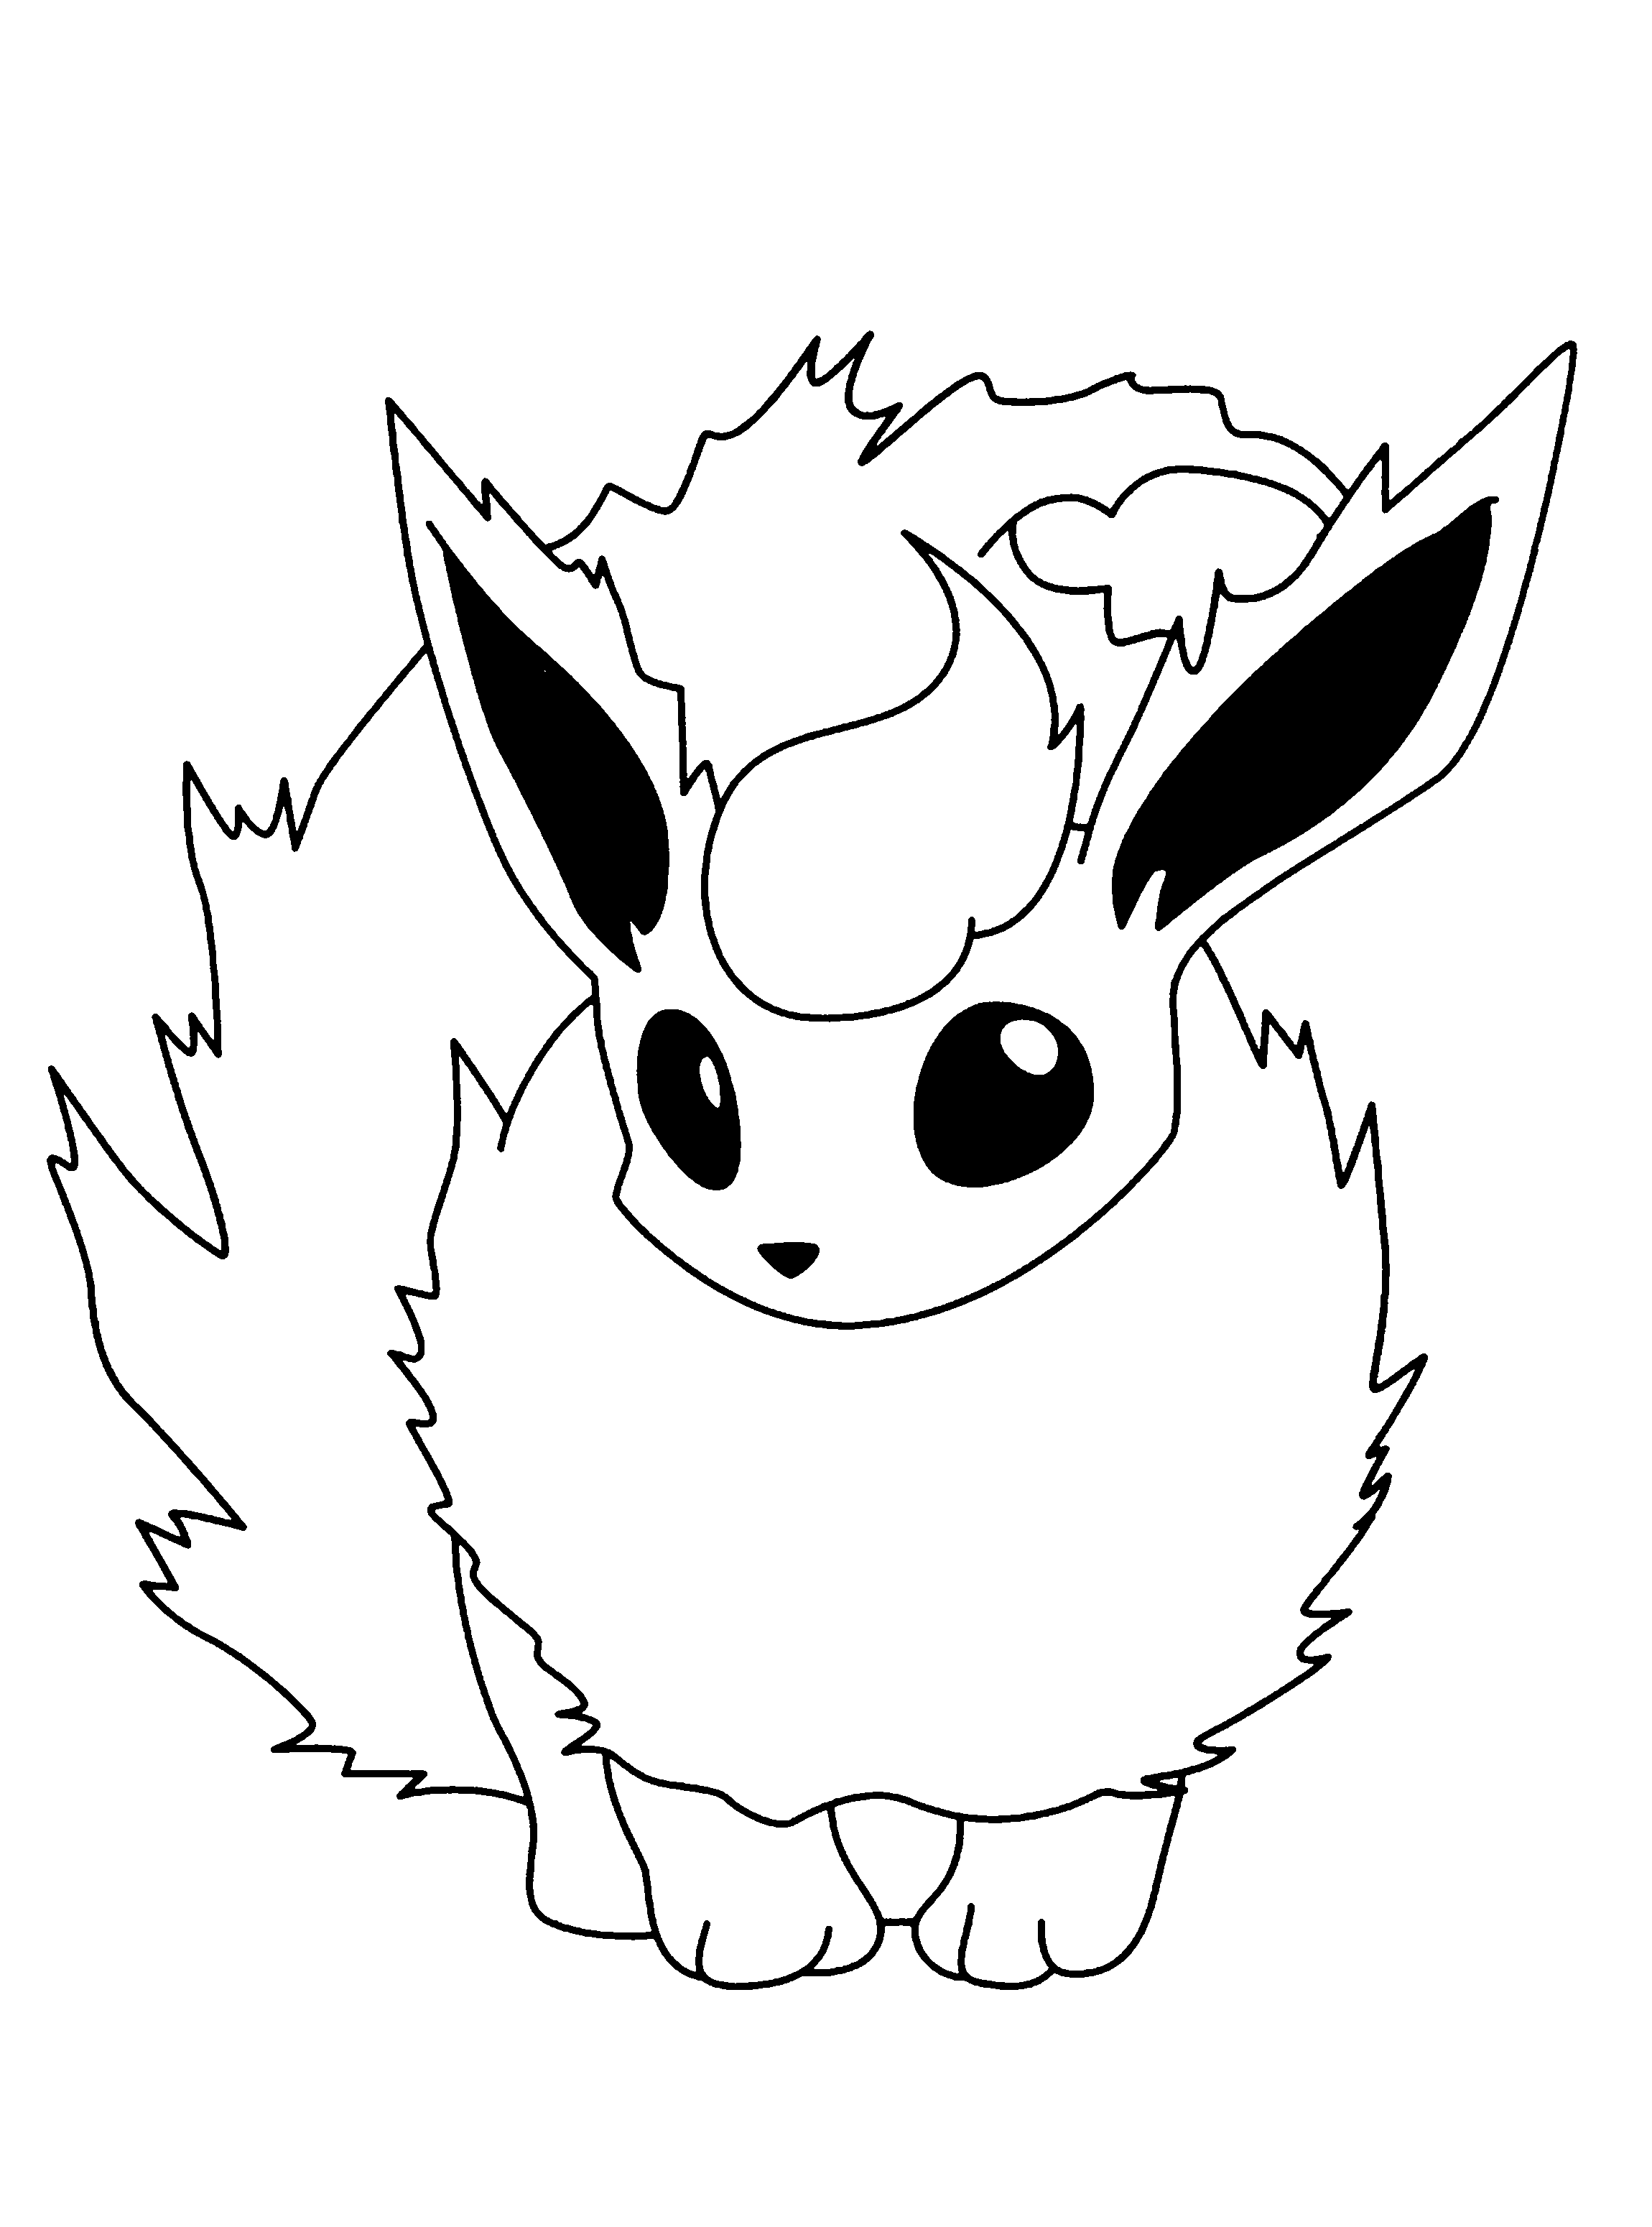 Coloring games of pokemon - Pokemon Coloring Pages Download Pokemon Images And Print Them For